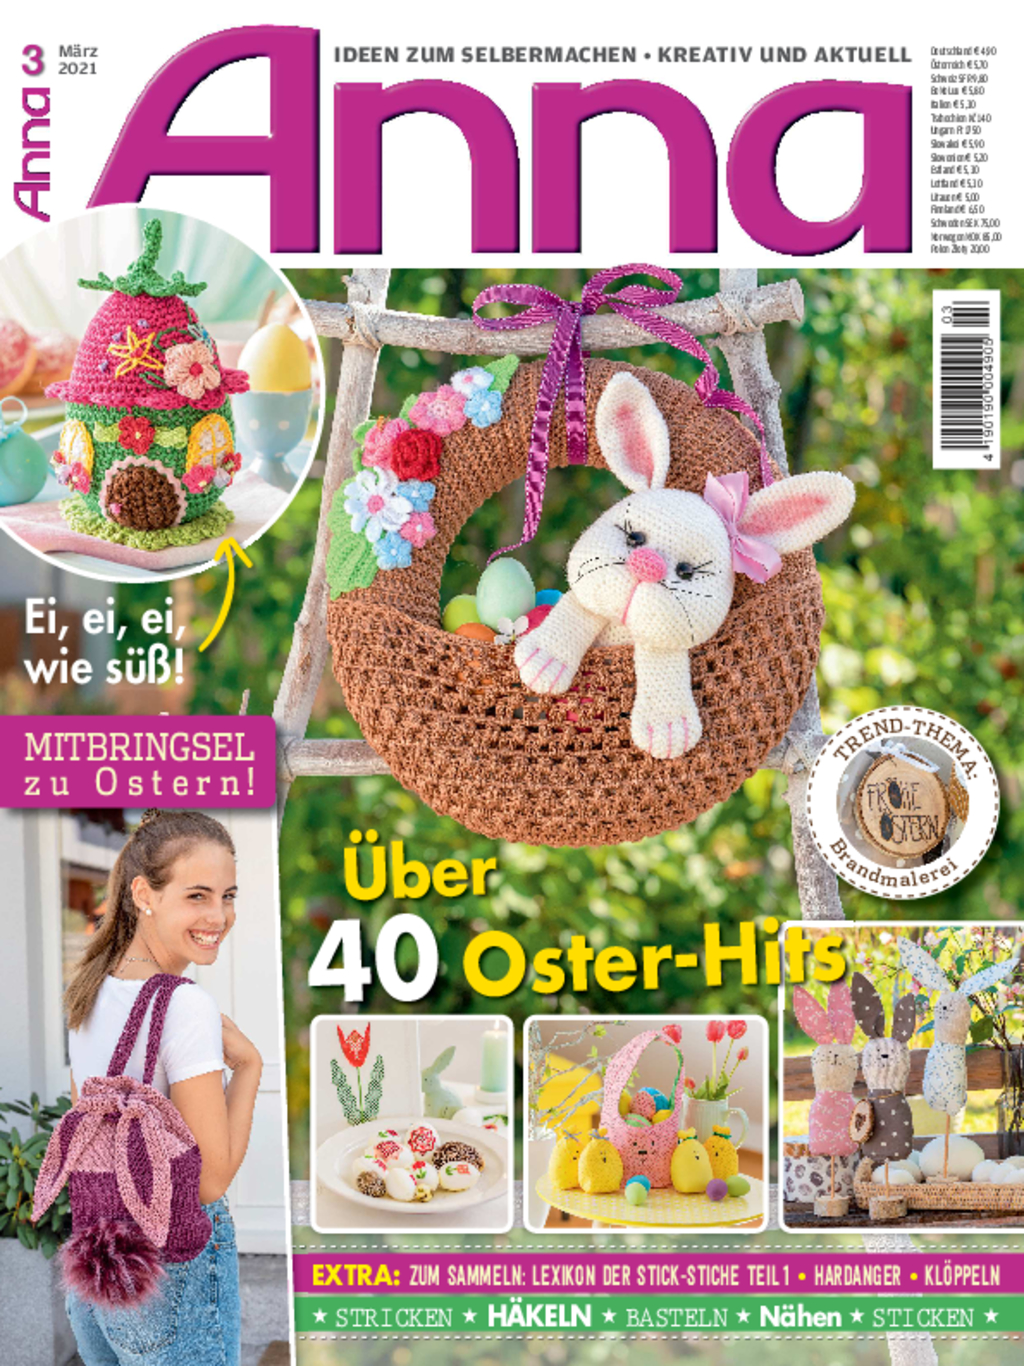 Anna Nr. 3/2021 - Über 40 Oster-Hits